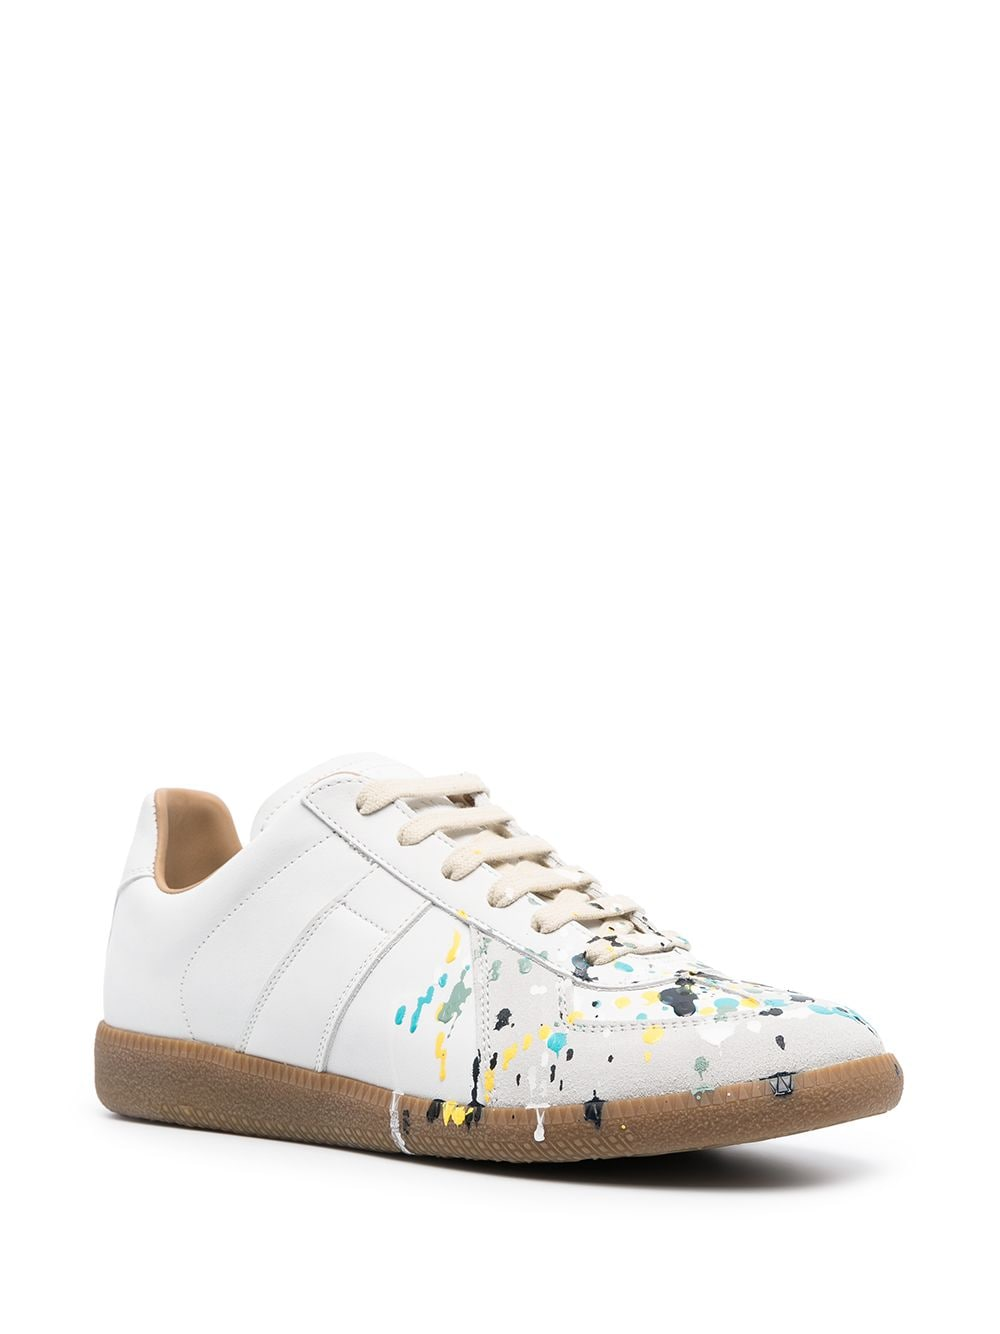 Paint-Splatter Low-Top Sneakers